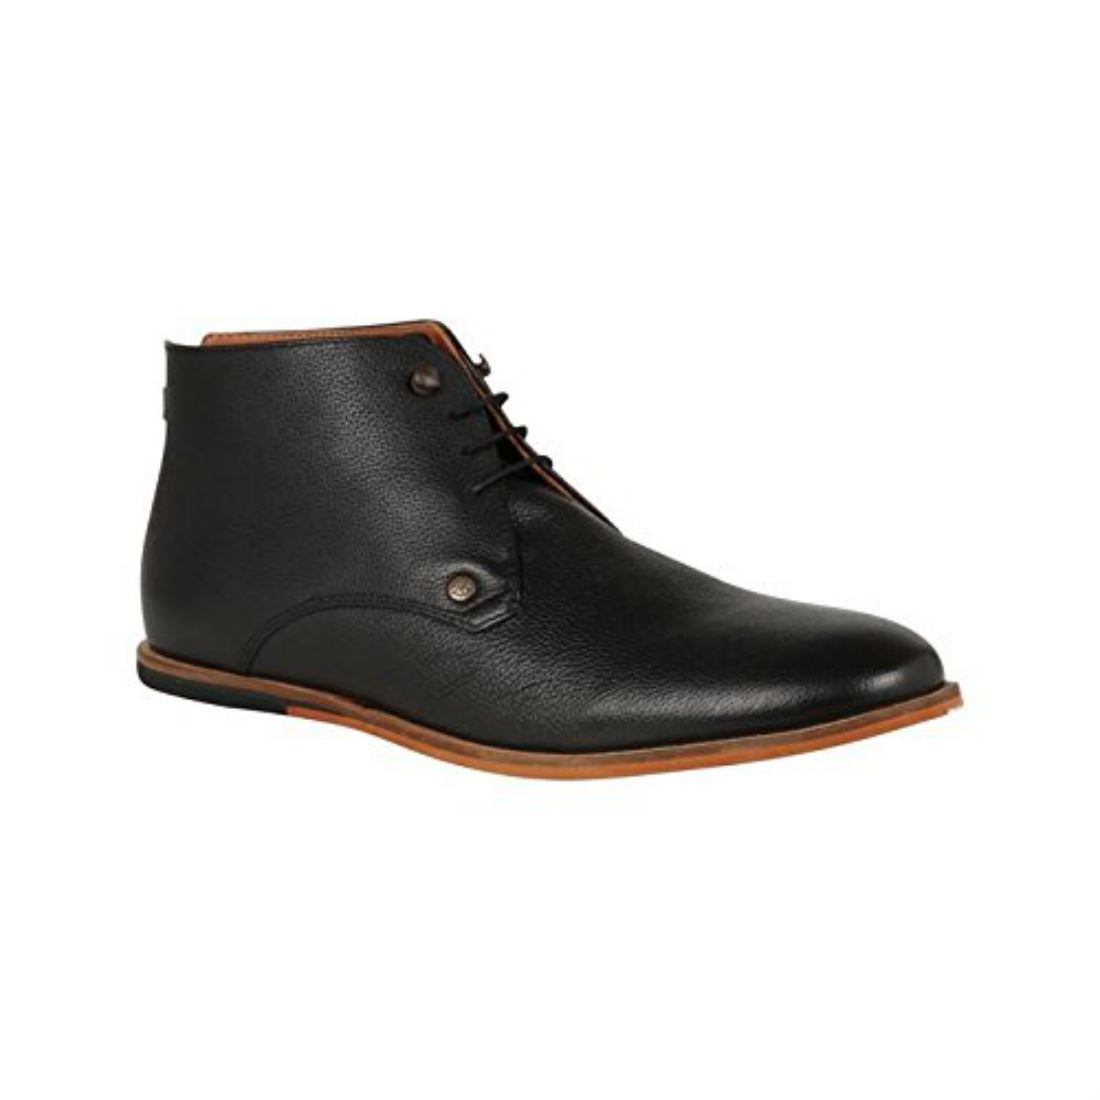 frank wright mens smith premium leather mid ankle cuff